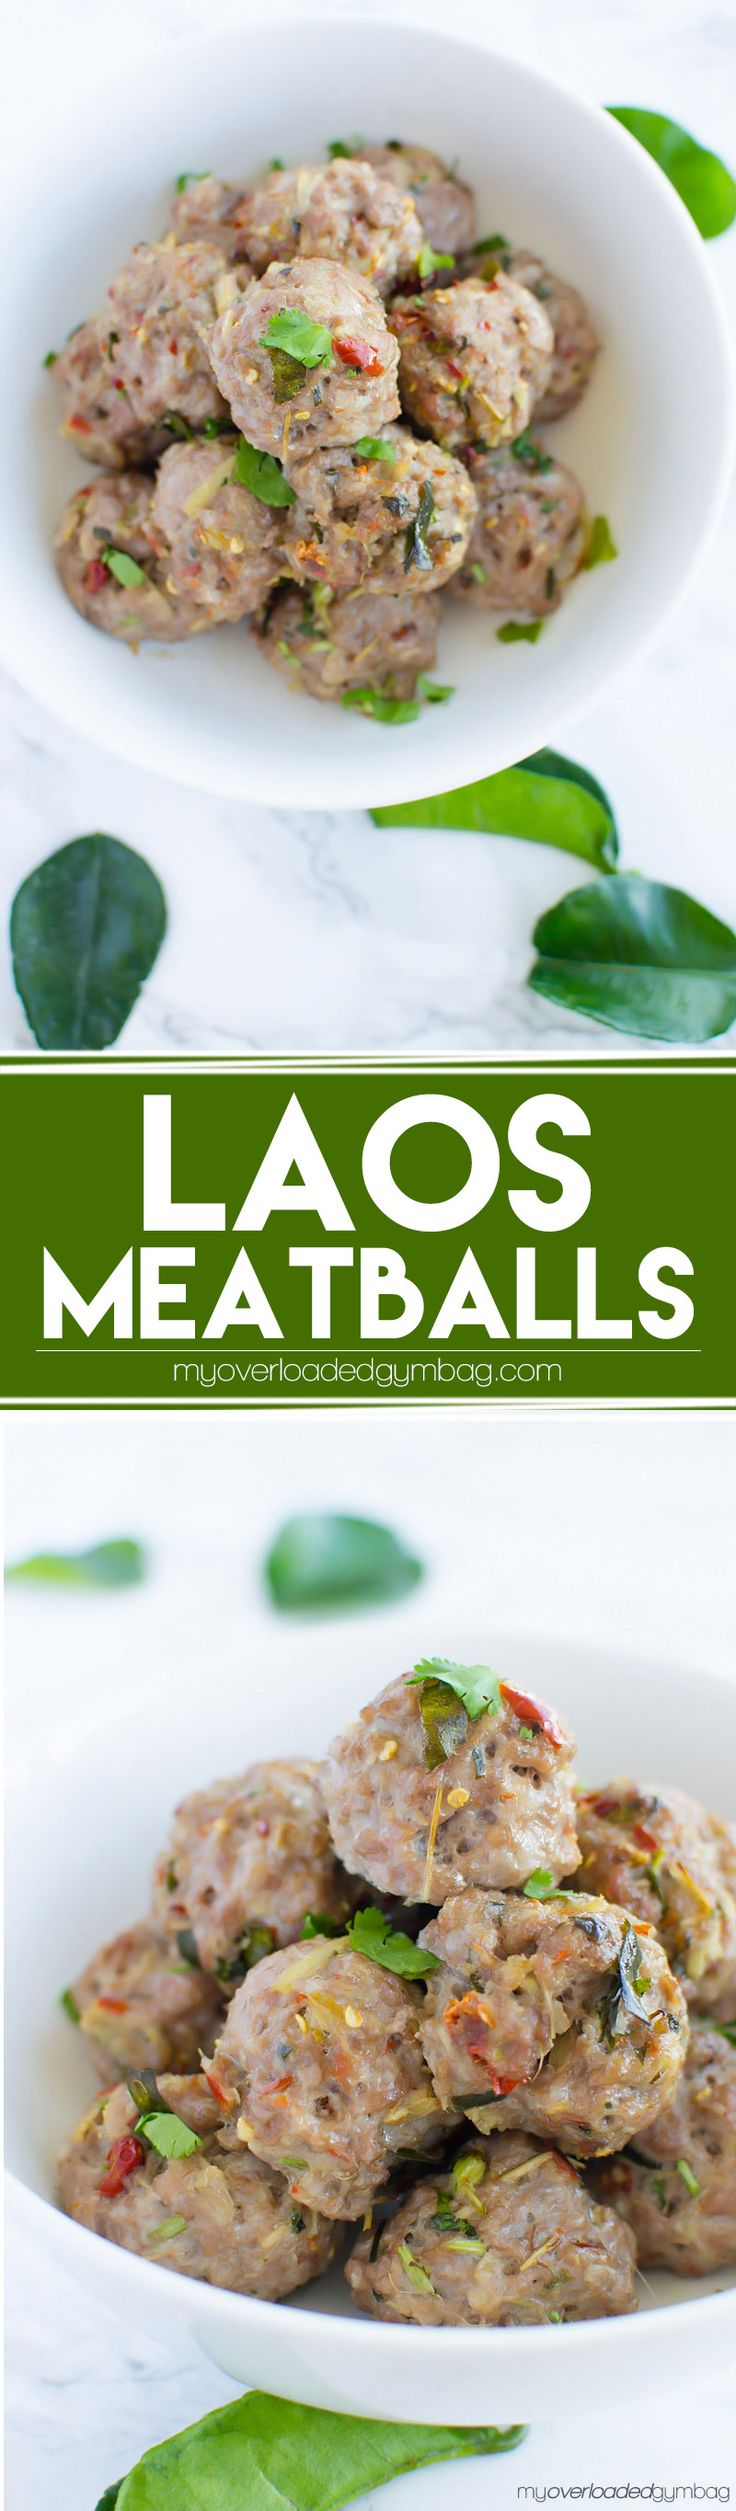 A low FODMAP recipe. An easy, exotic, no fuss Laotian meatball that sends your tastebuds on a South East Asian adventure!   myoverloadedgymbag.com